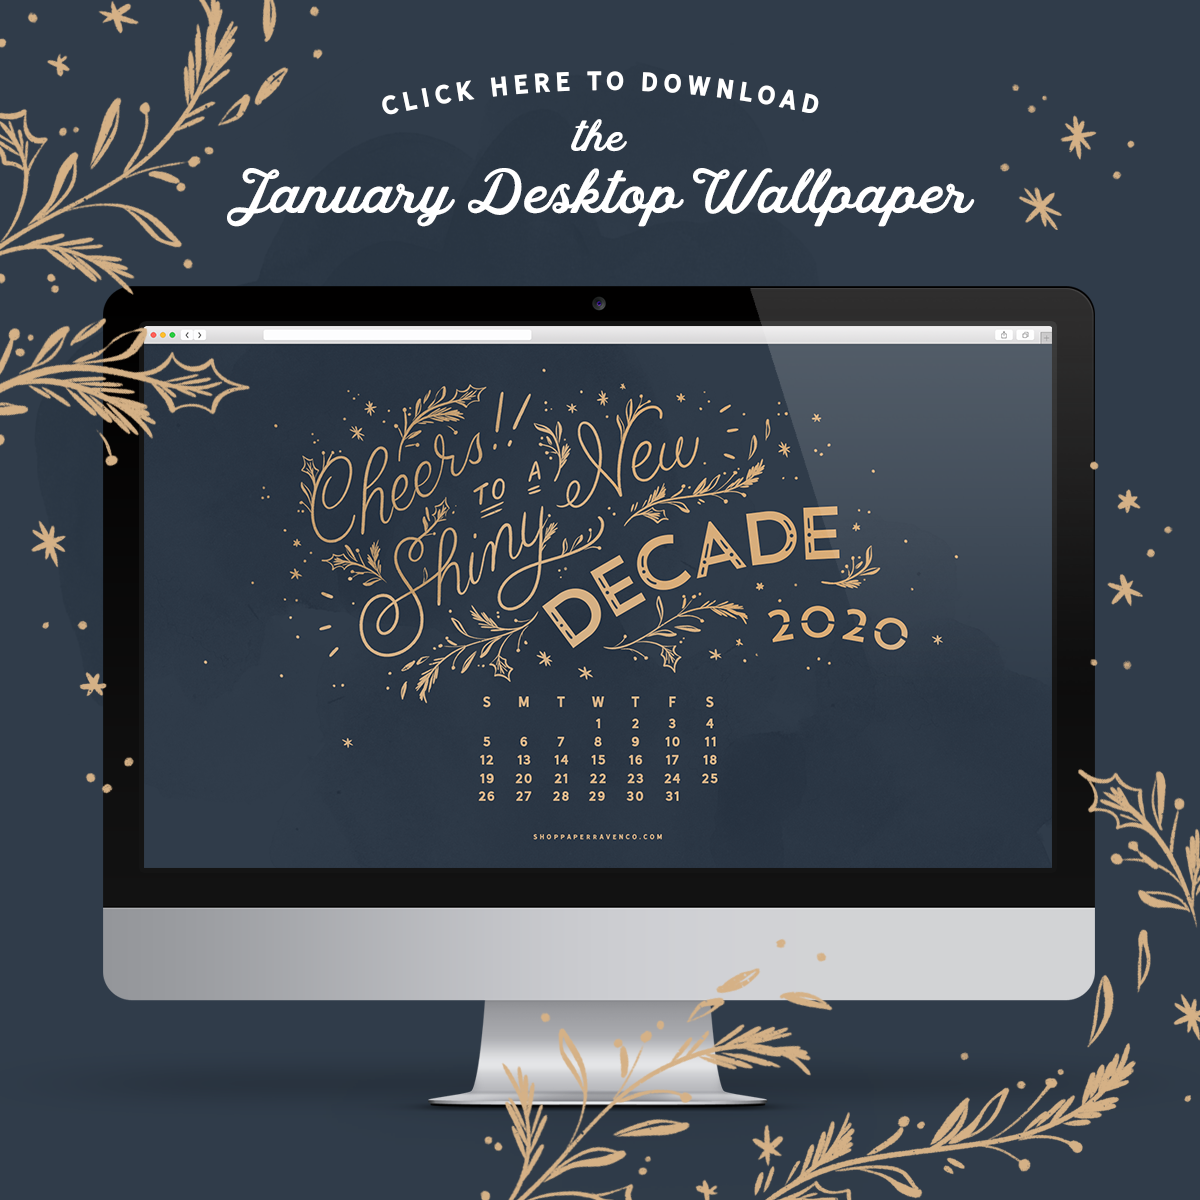 January 2020 Illustrated Desktop Wallpaper by Paper Raven Co. | www.ShopPaperRavenCo.com | #dressyourtech #desktopwallpaper #desktopdownload